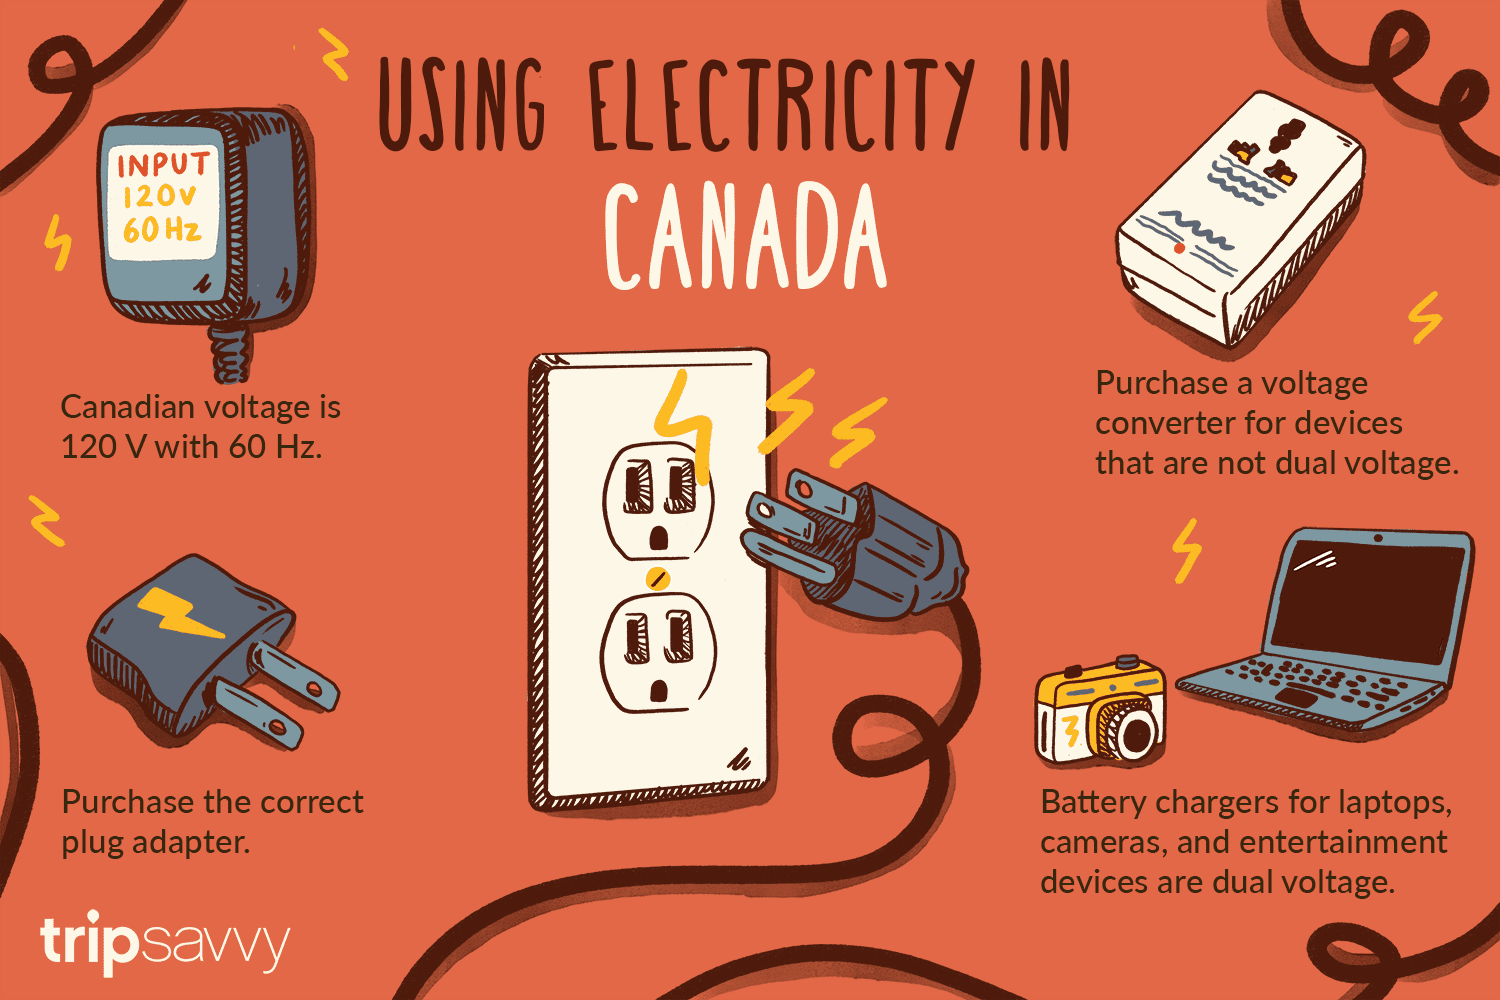 Voltage Frequency And Plug Type In Canada